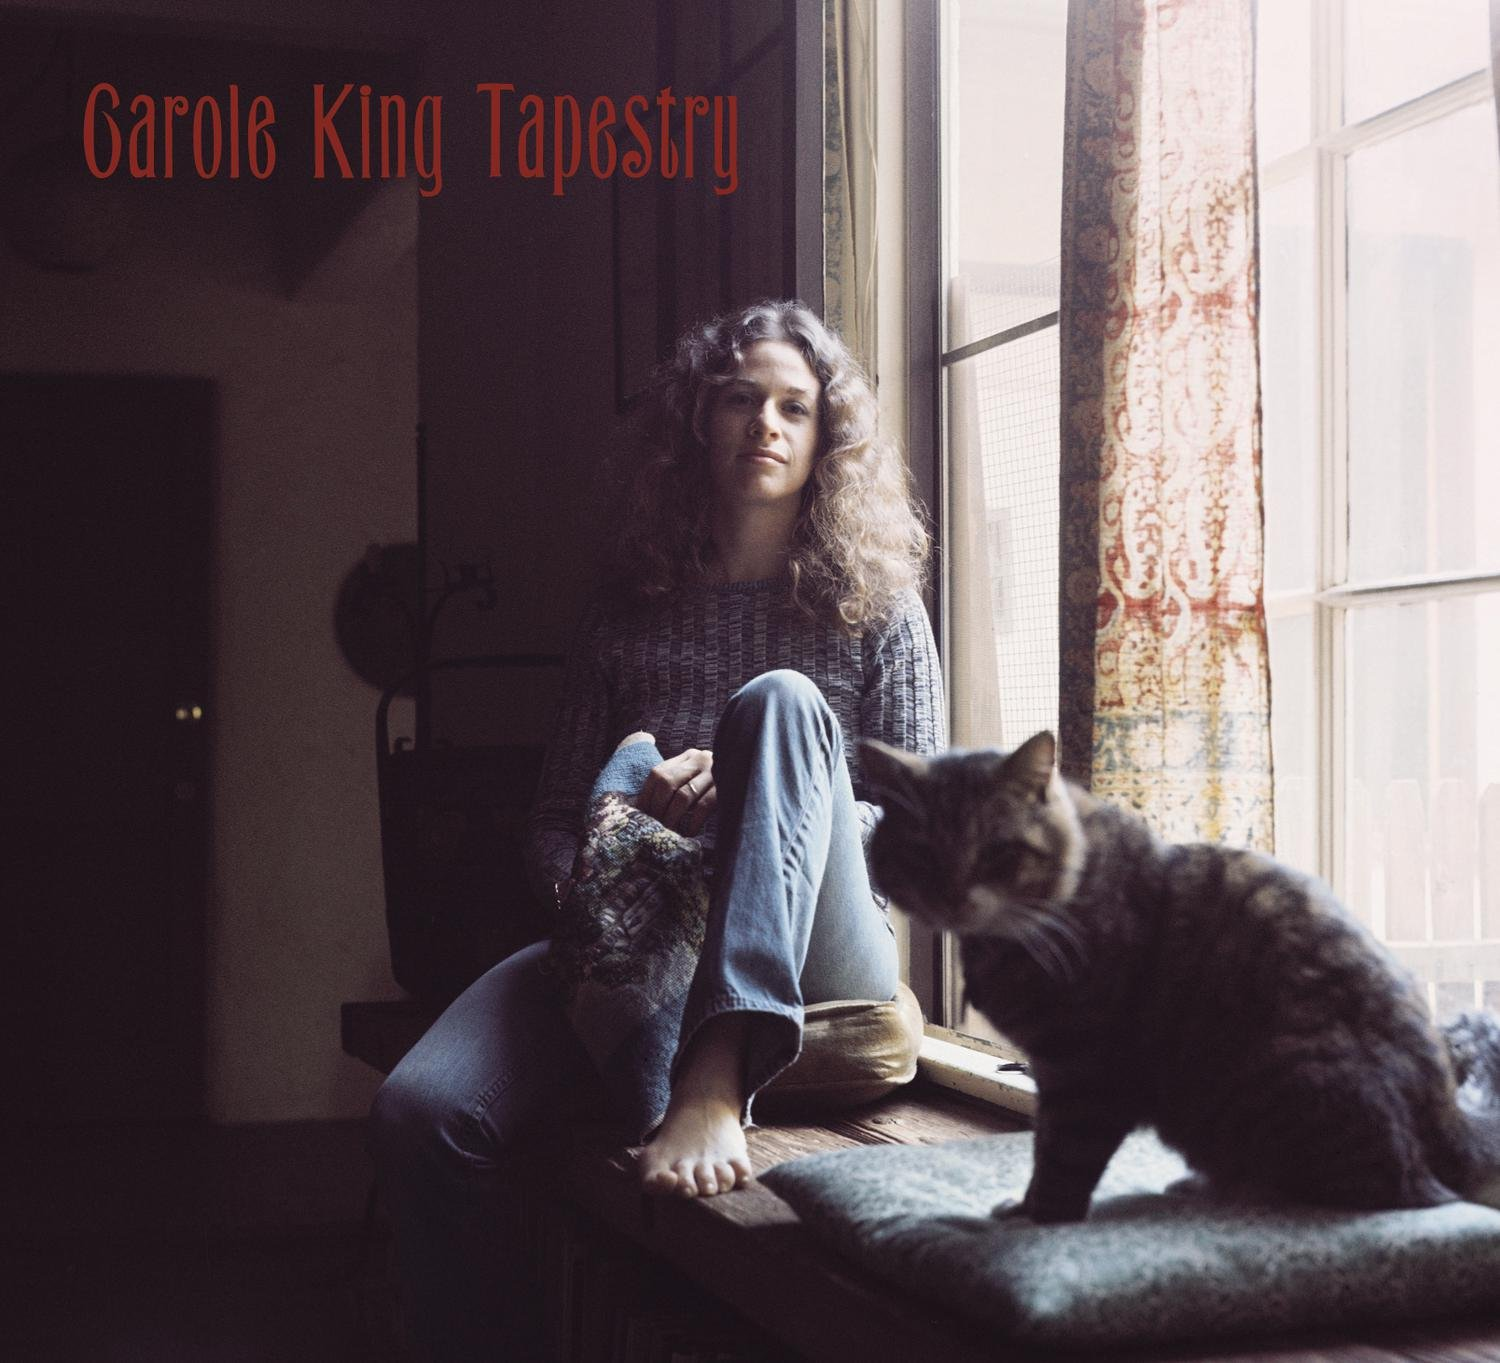 Image result for tapestry carole king